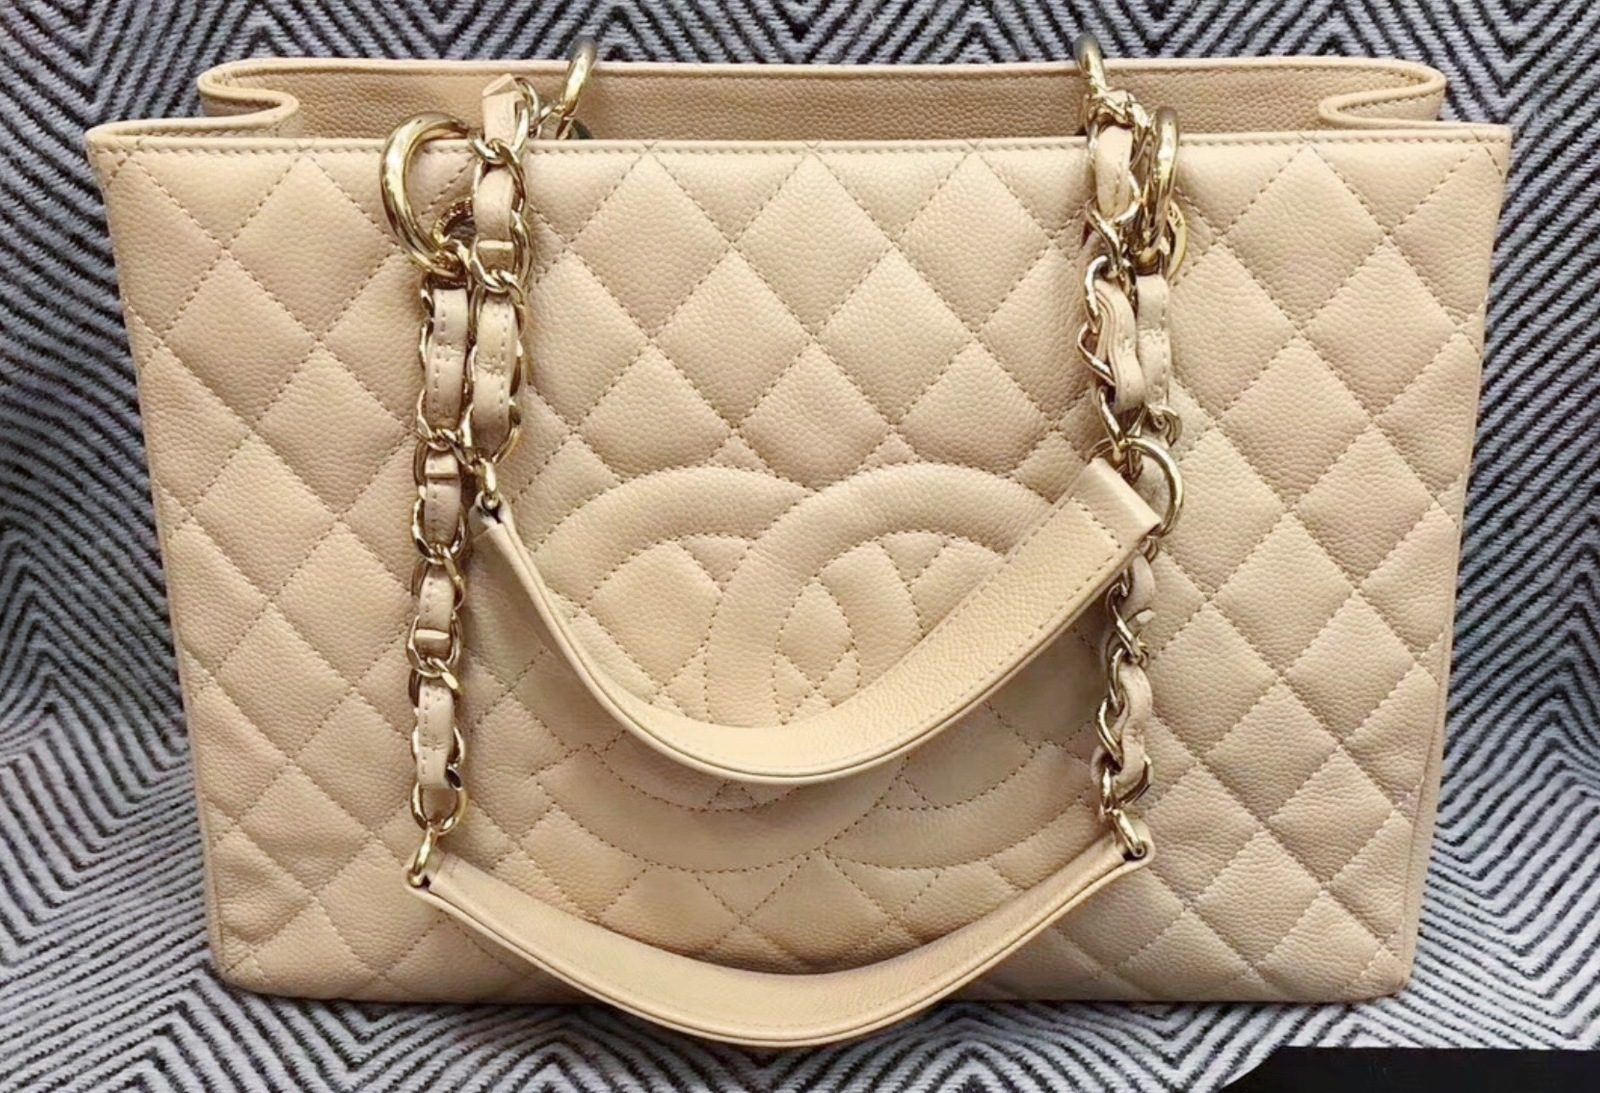 AUTHENTIC CHANEL QUILTED CAVIAR GST GRAND SHOPPING TOTE BAG BEIGE GHW RECEIPT